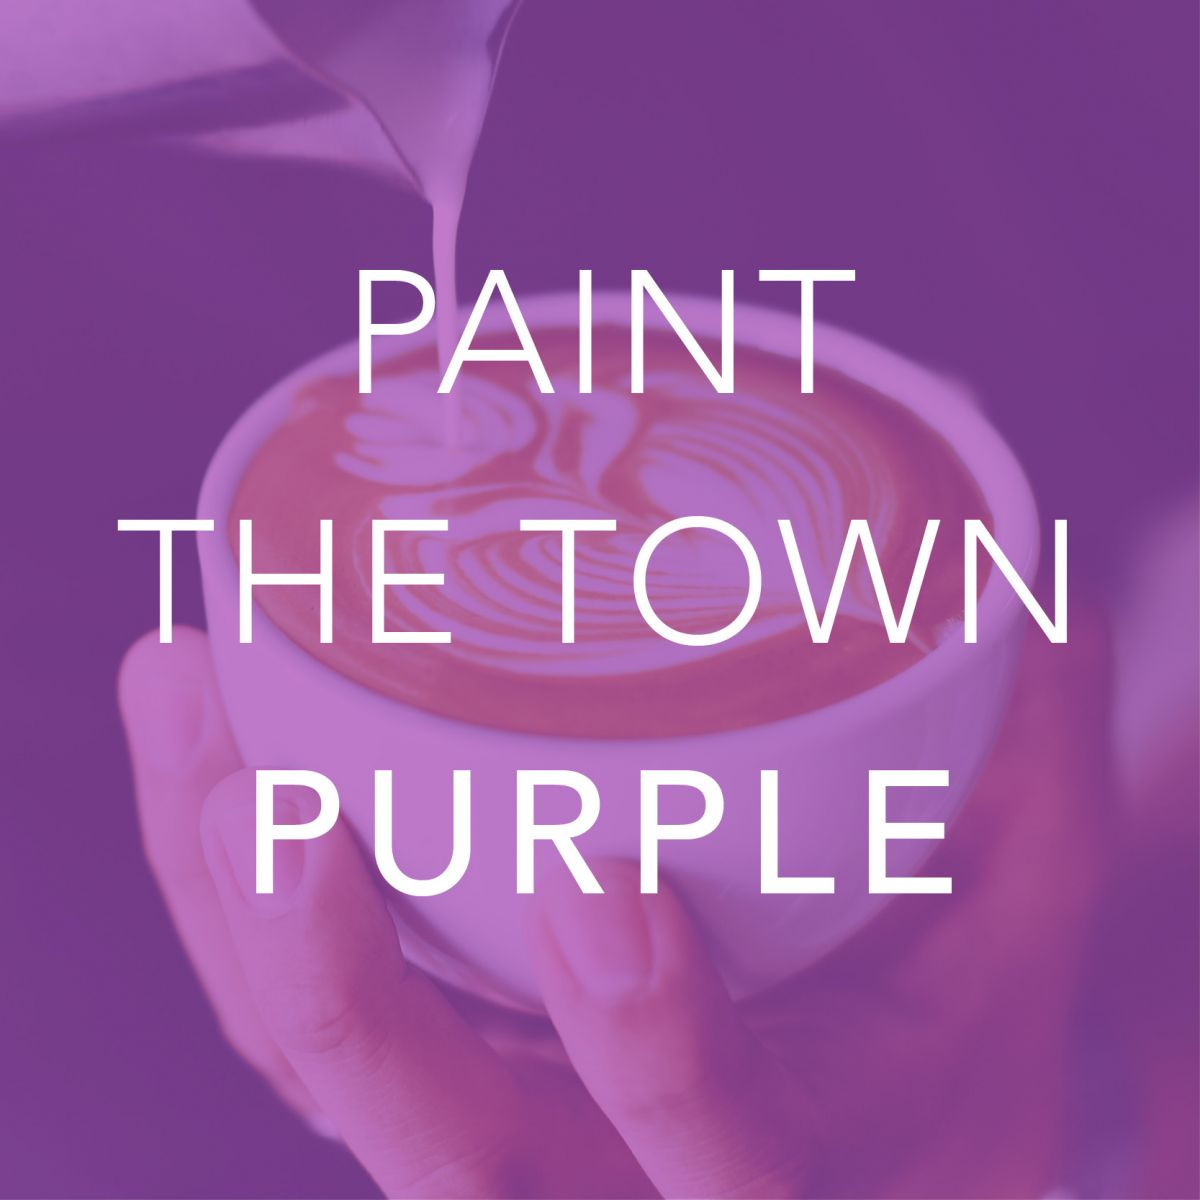 Paint the town purple: Purchase a coffee and donut in support of Interval House of Hamilton